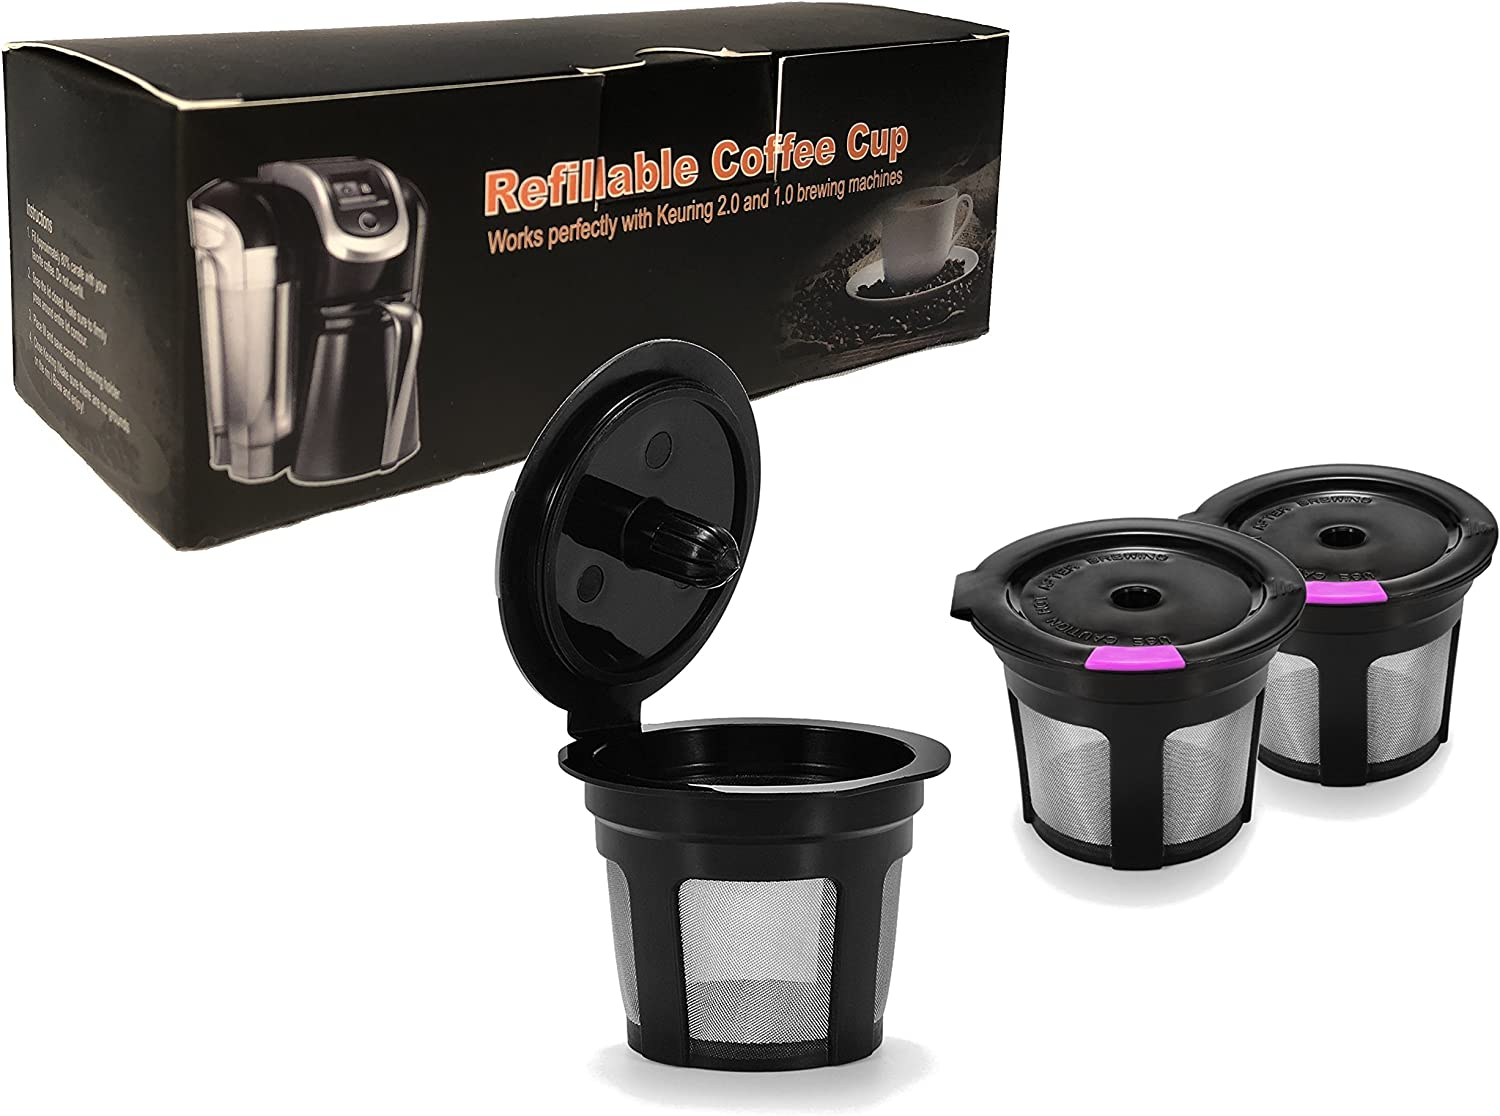 B07FNBRNYN 3 Pack Black & Purple Reusable K Cups For Keurig 2.0 & 1.0 Brewers Universal Fit For Refillable Single Cup Coffee Filters - Eco Friendly Stainless Steel Mesh Filter BPA Free by A&N Direct 81k0kvaUBVL